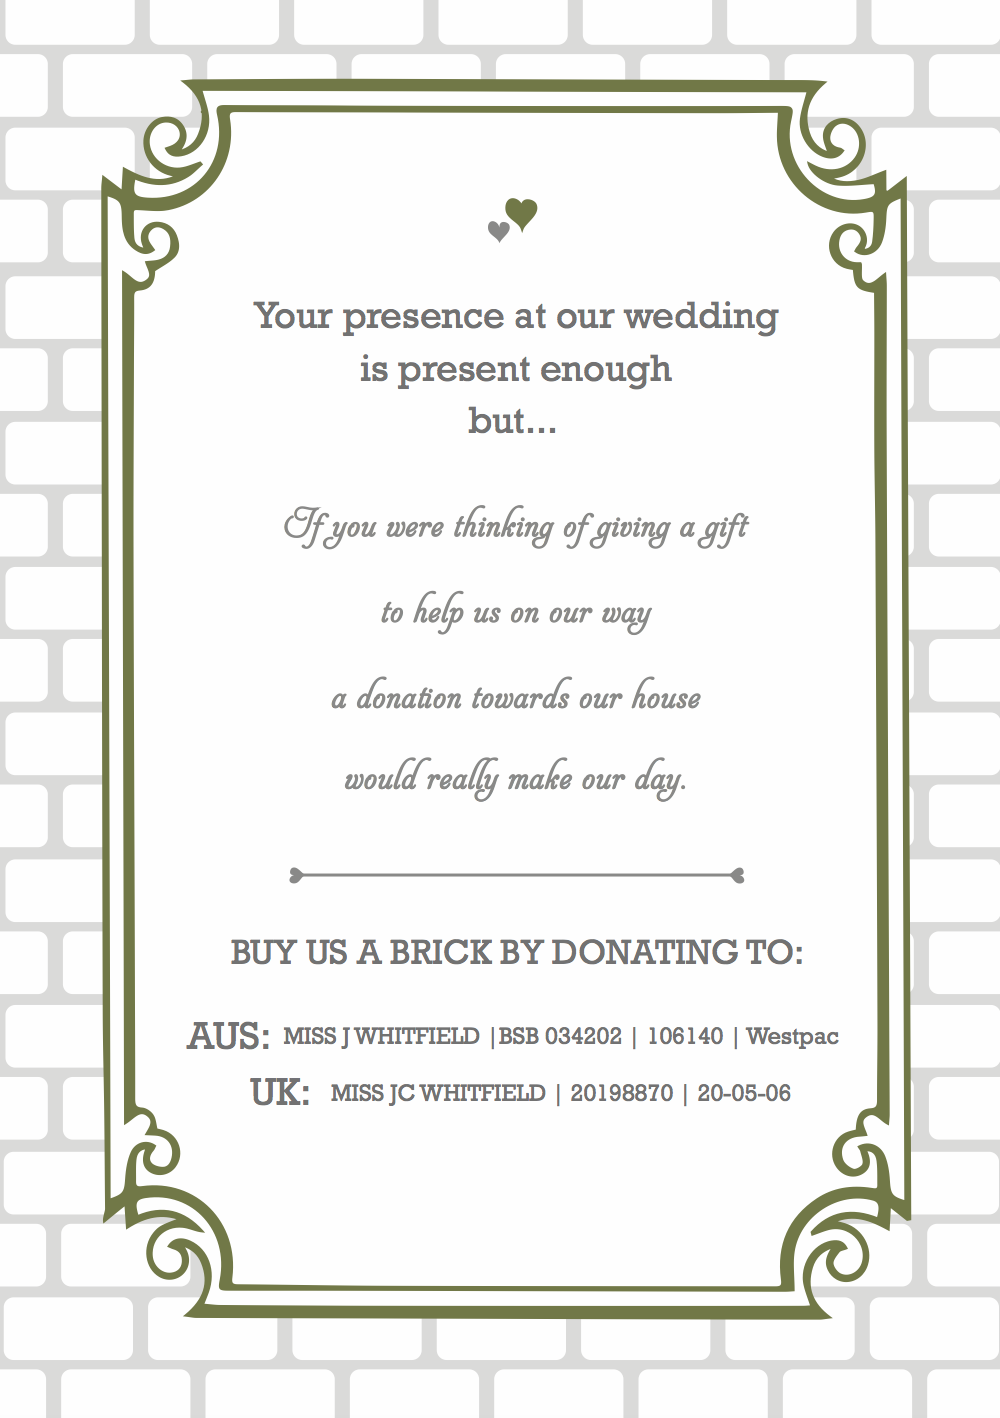 Wedding_Stationery_personalised_bespoke_design.png